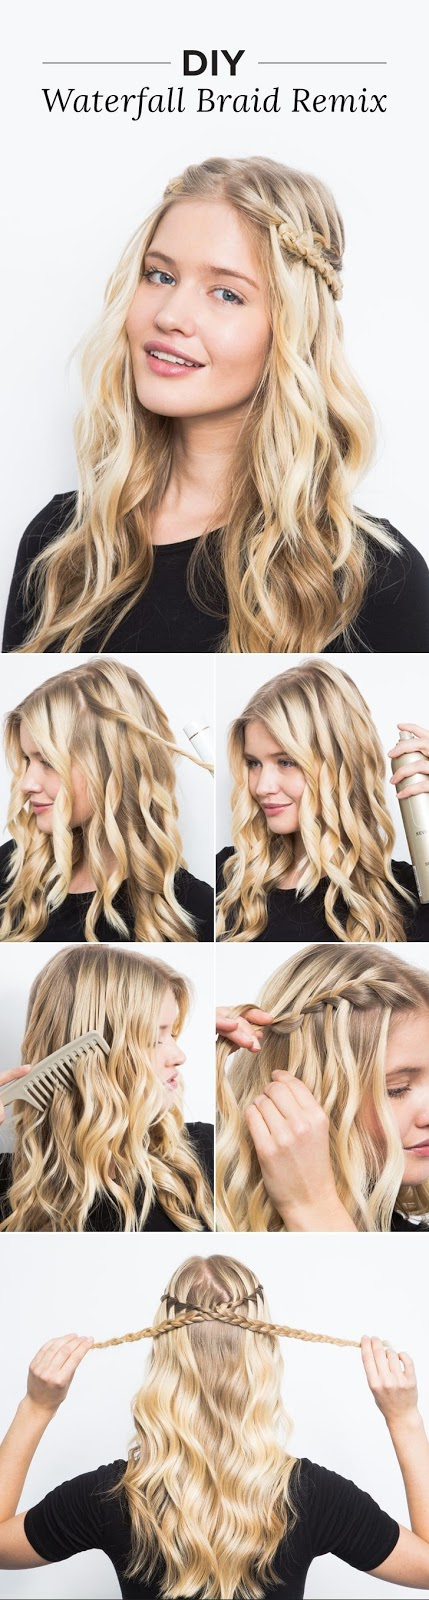 DIY Waterfall Braid Remix | The waterfall braid looks way more complicated than it actually is! Try our easy tutorial to get this dreamy, wavy hairstyle in just a few simple steps.